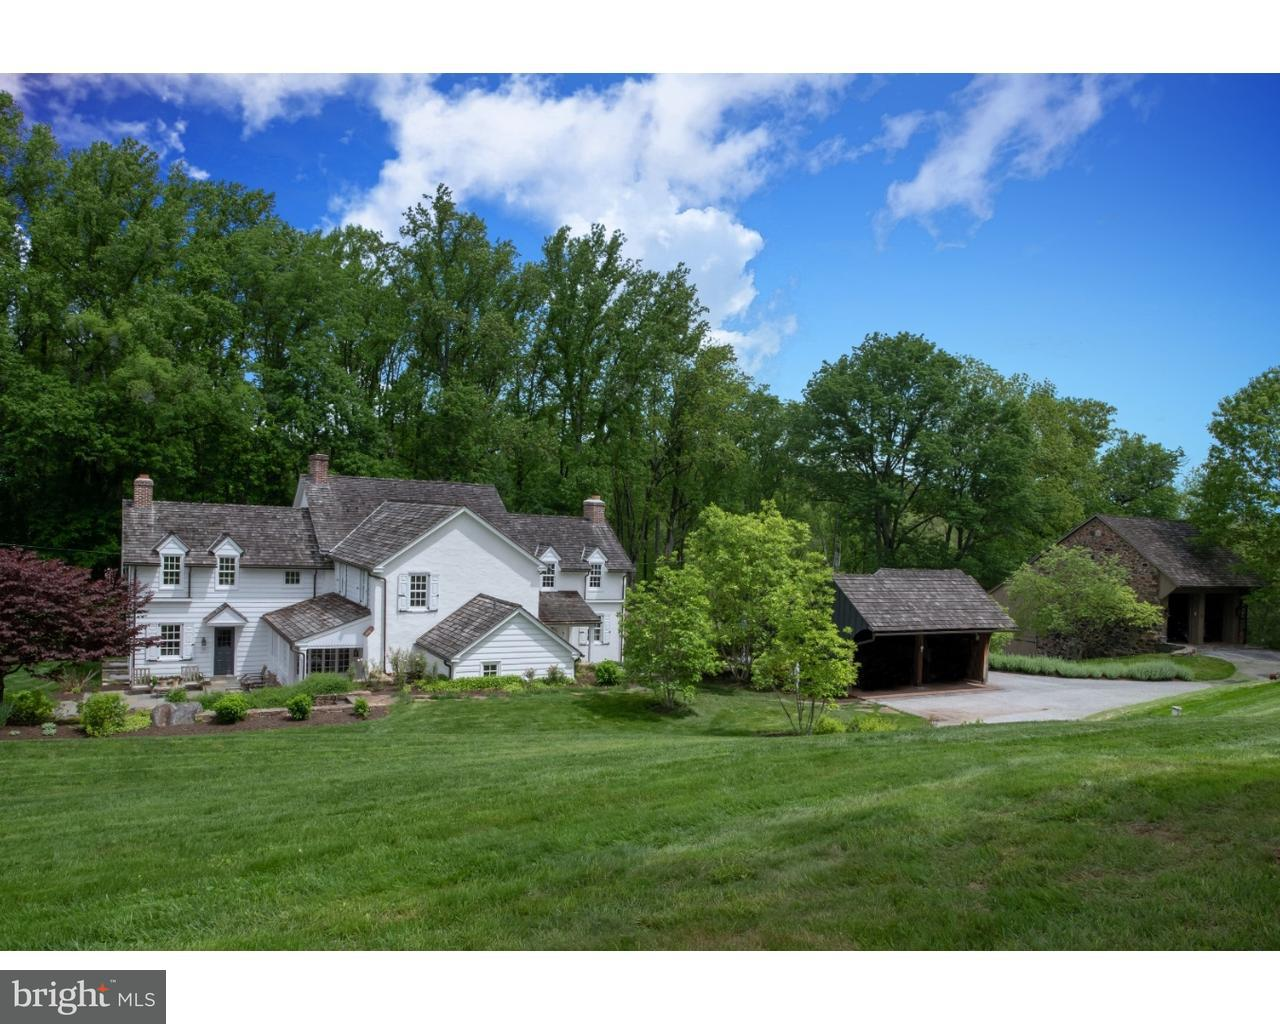 820 FAIRVILLE RD, CHADDS FORD - Listed at $1,900,000,